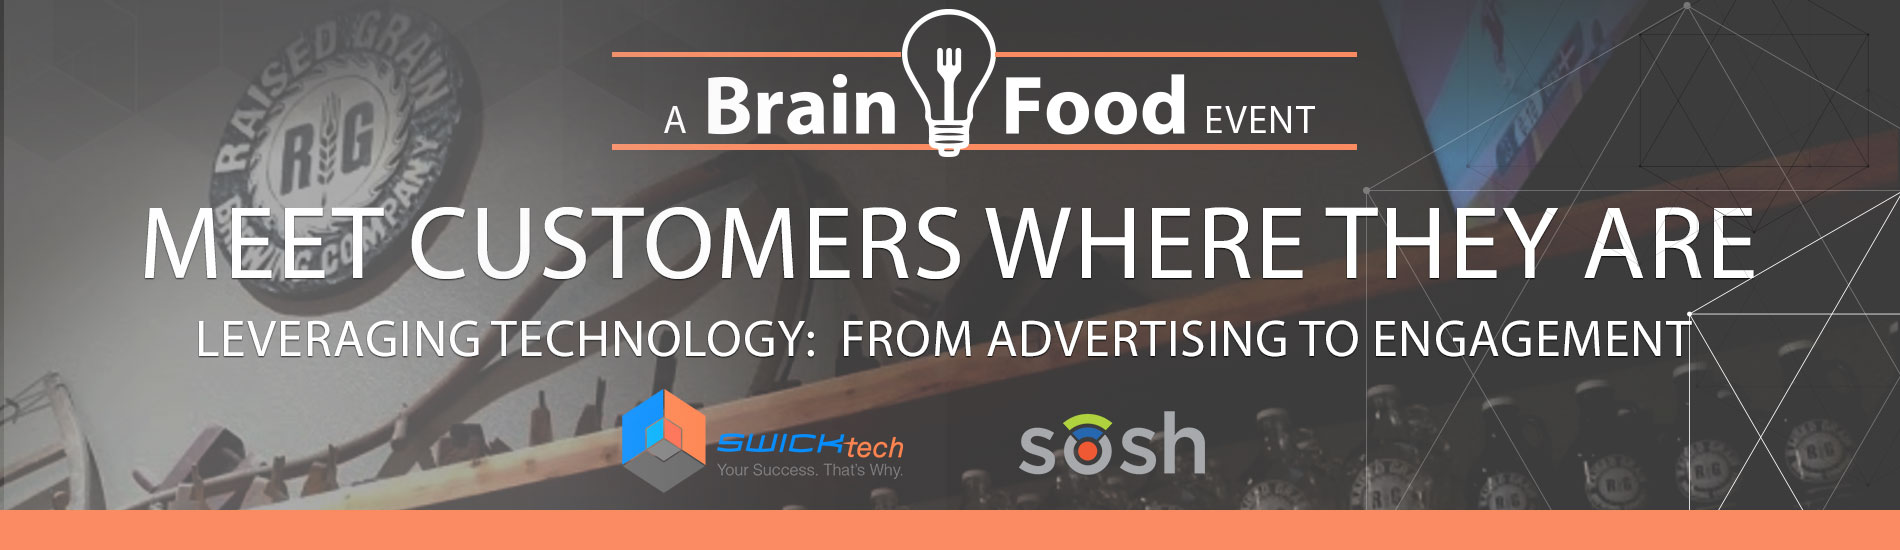 Sosh and SWICKtech Brain Food Event